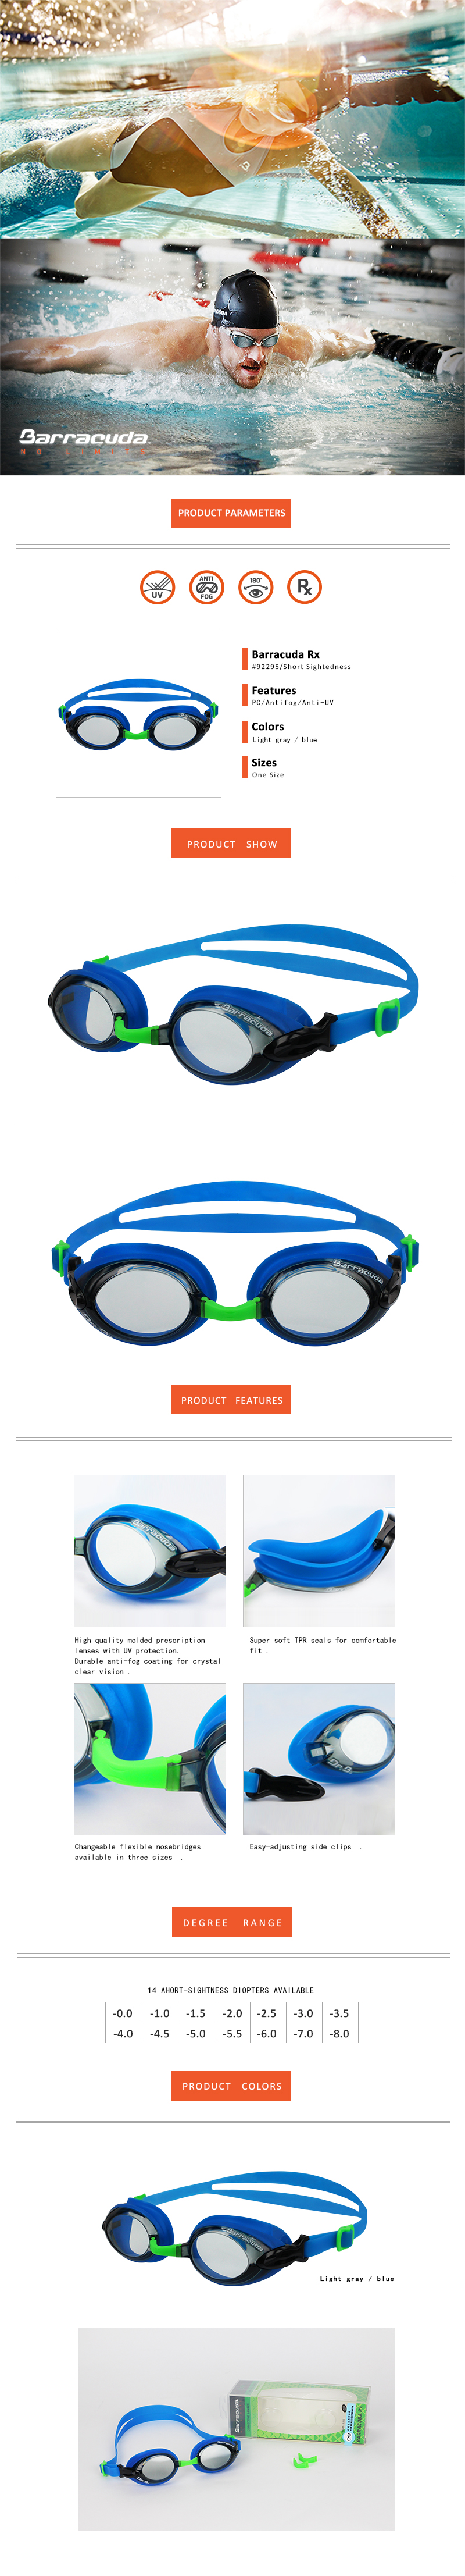 416c4433f7 Also available in the long sighted optical lenses! Please check out our  online store for more BARRACUDA RX Goggles.